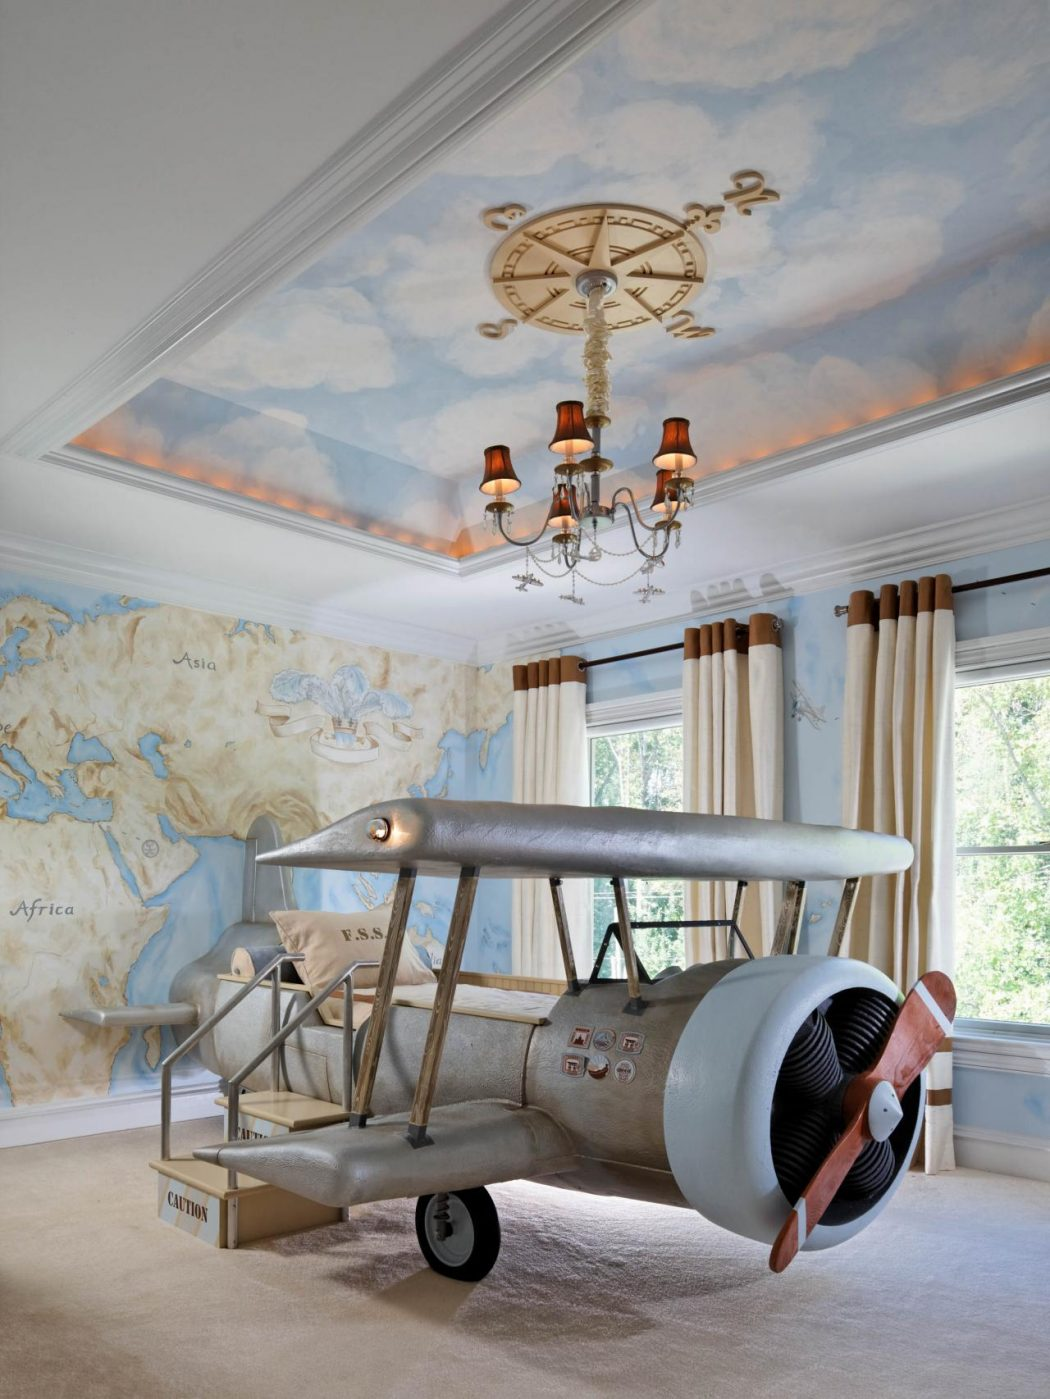 RS_dahlia-mahmood-blue-eclectic-kid-room-airplane_3x4.jpg.rend_.hgtvcom.1280.1707 +25 Marvelous Kids' Rooms Ceiling Designs Ideas